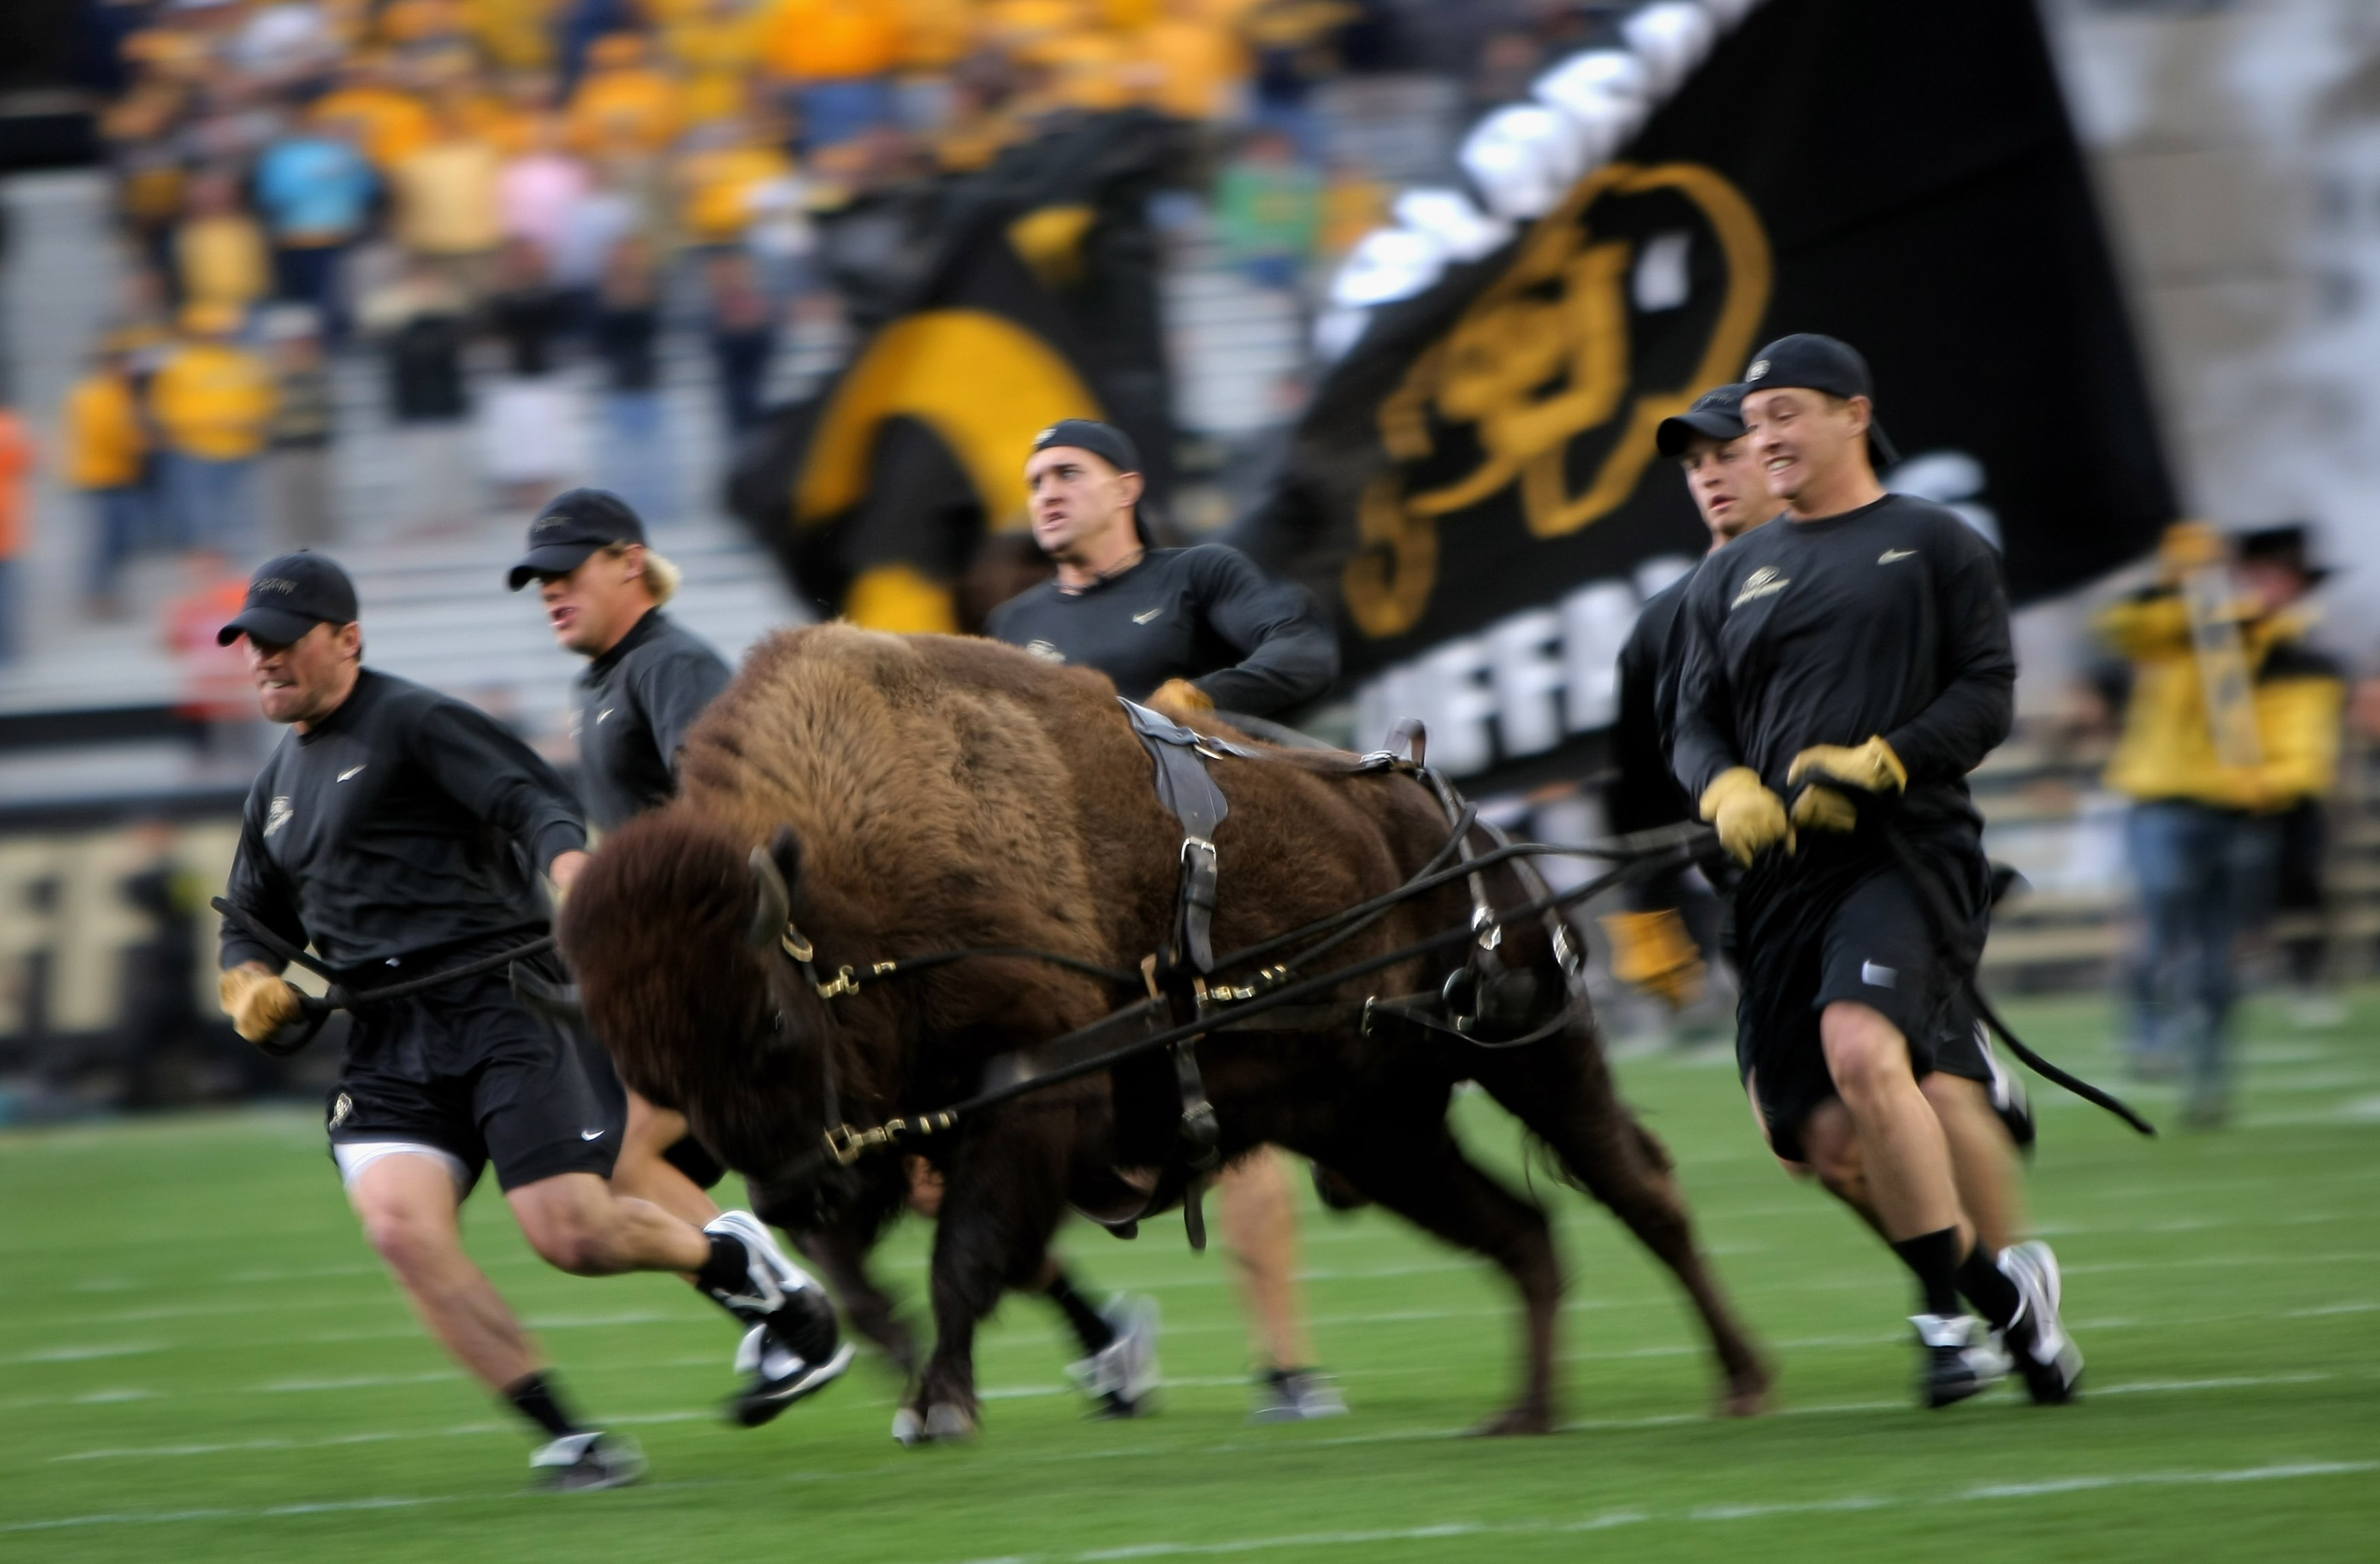 BOULDER, CO - SEPTEMBER 18:  Ralphie V, the Buffalo mascot of the Colorado Buffaloes, made her debut as the team came onto the field to face the West Virginia Mountaineers at Folsom Field on September 18, 2008 in Boulder, Colorado. Colorado defeated West